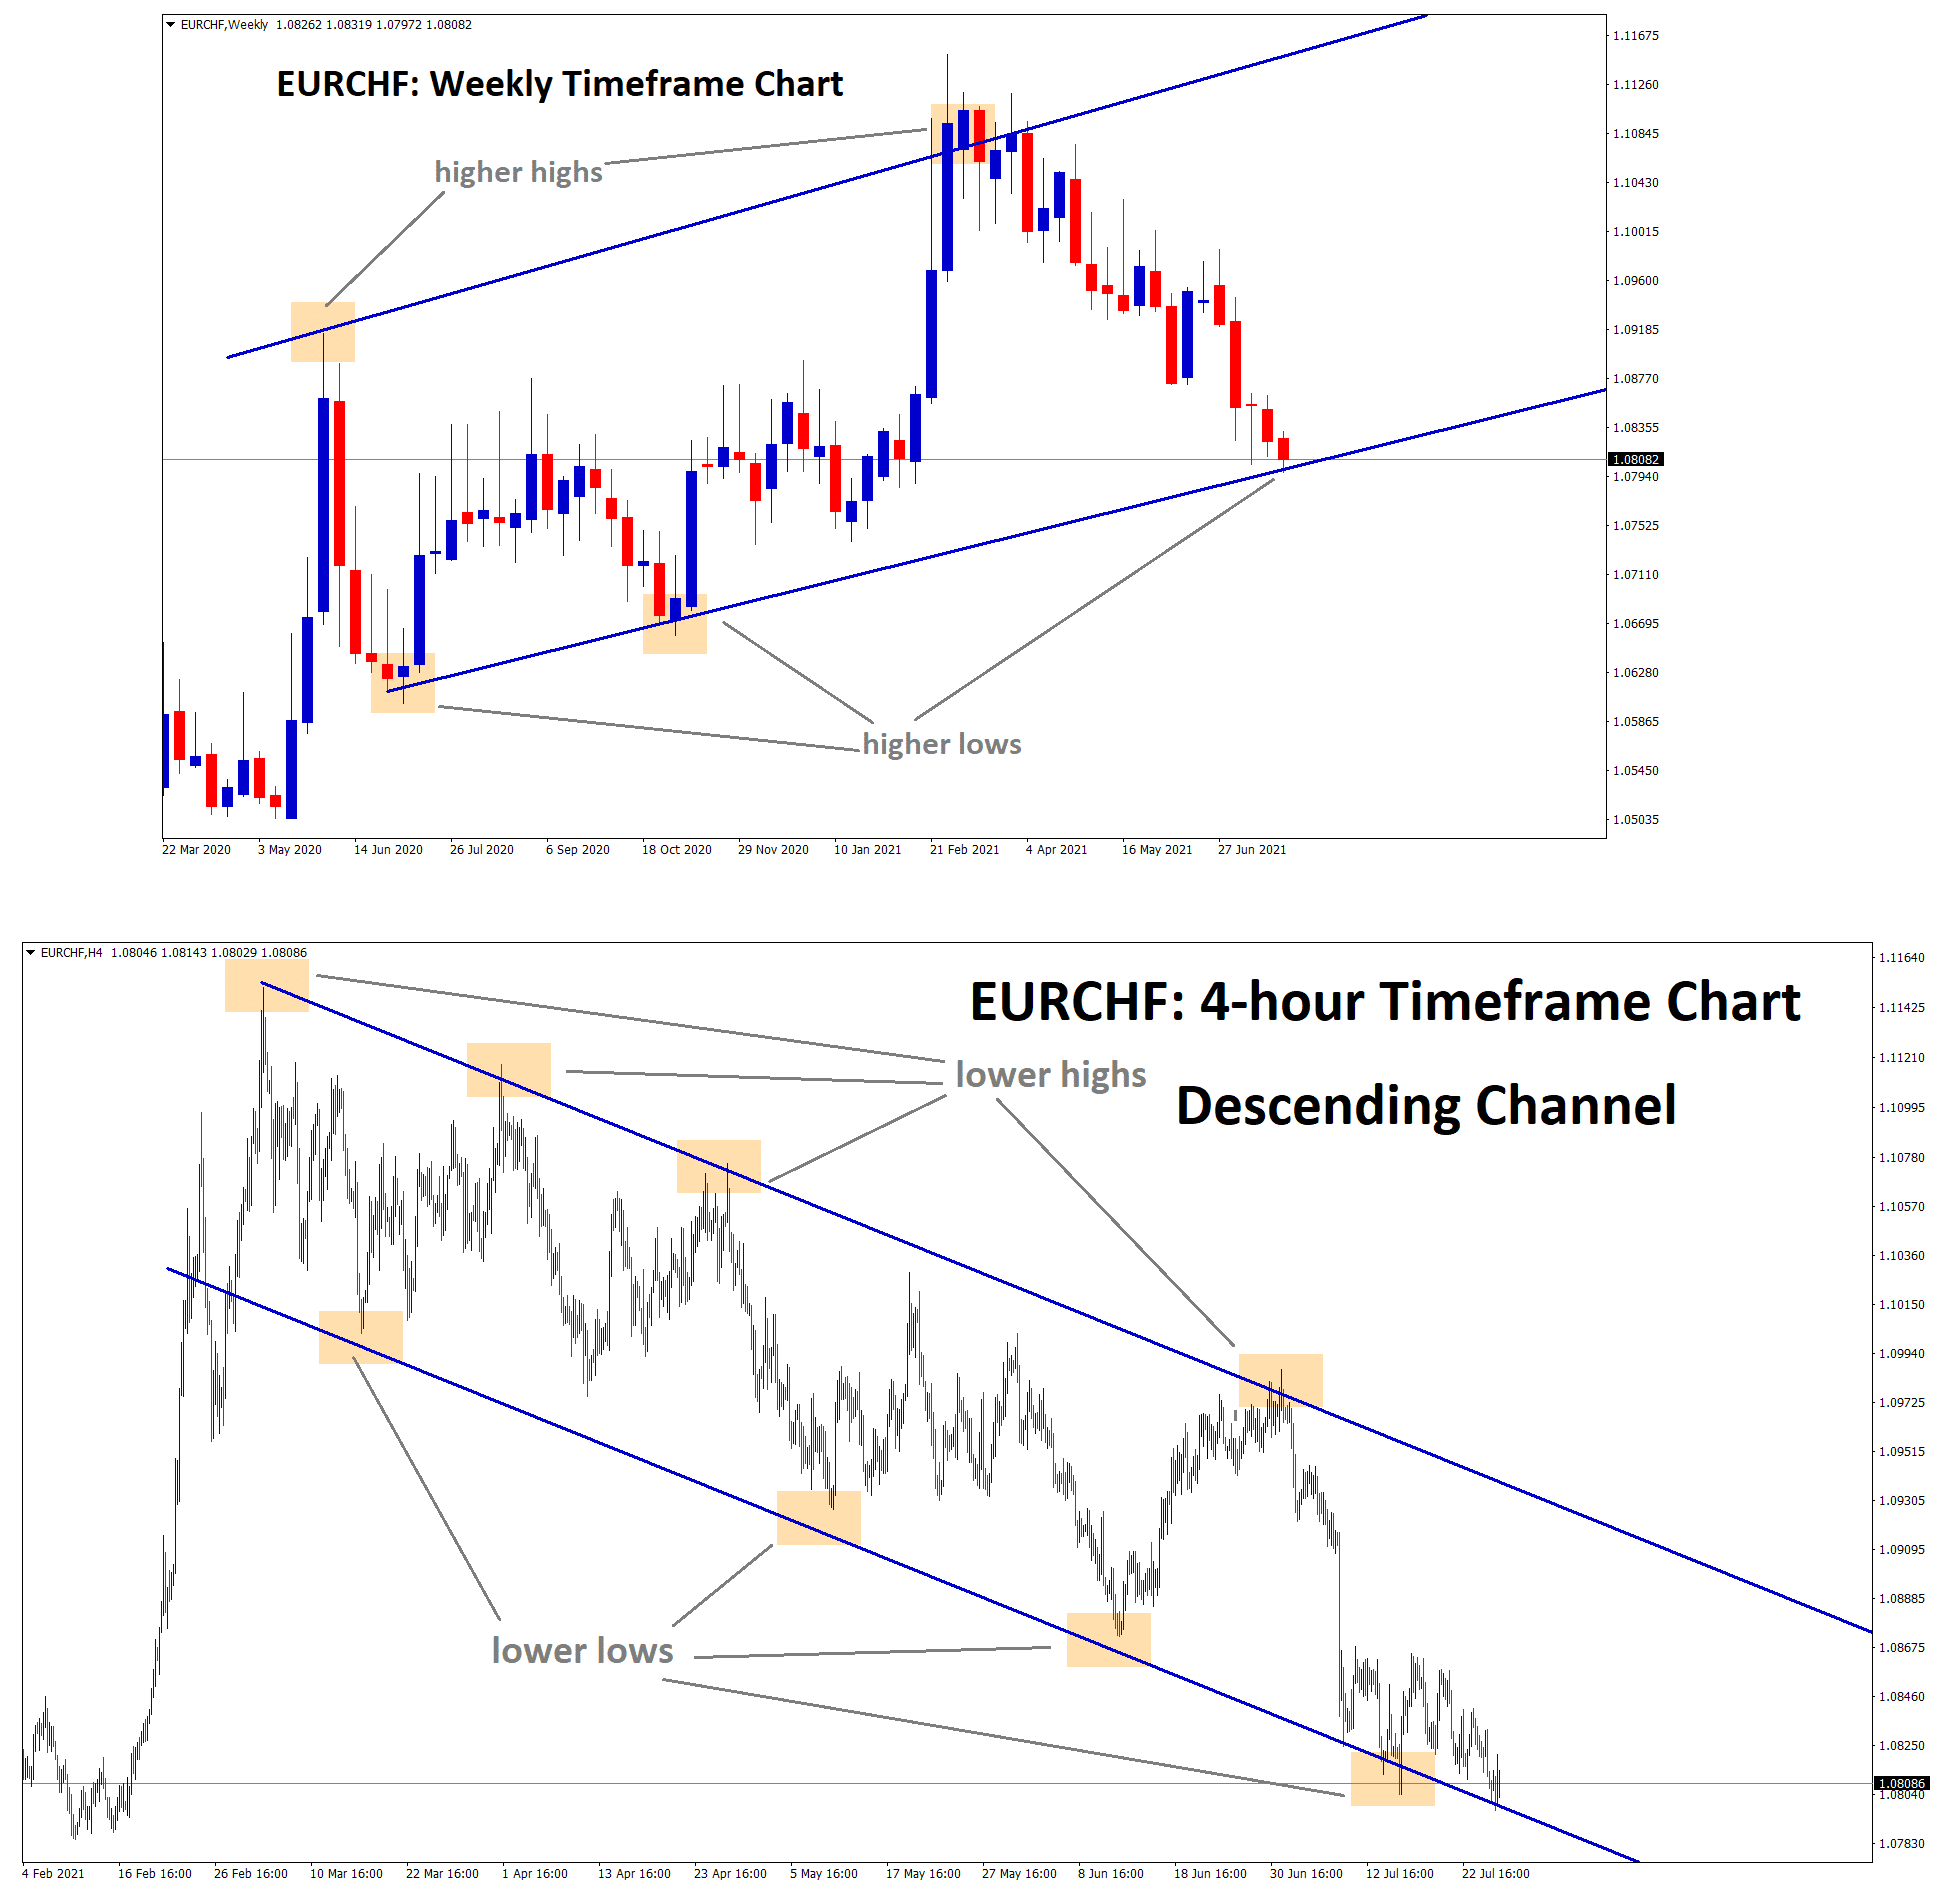 EURCHF hits the higher low level of an Uptrend line and lower low level of Descending channel